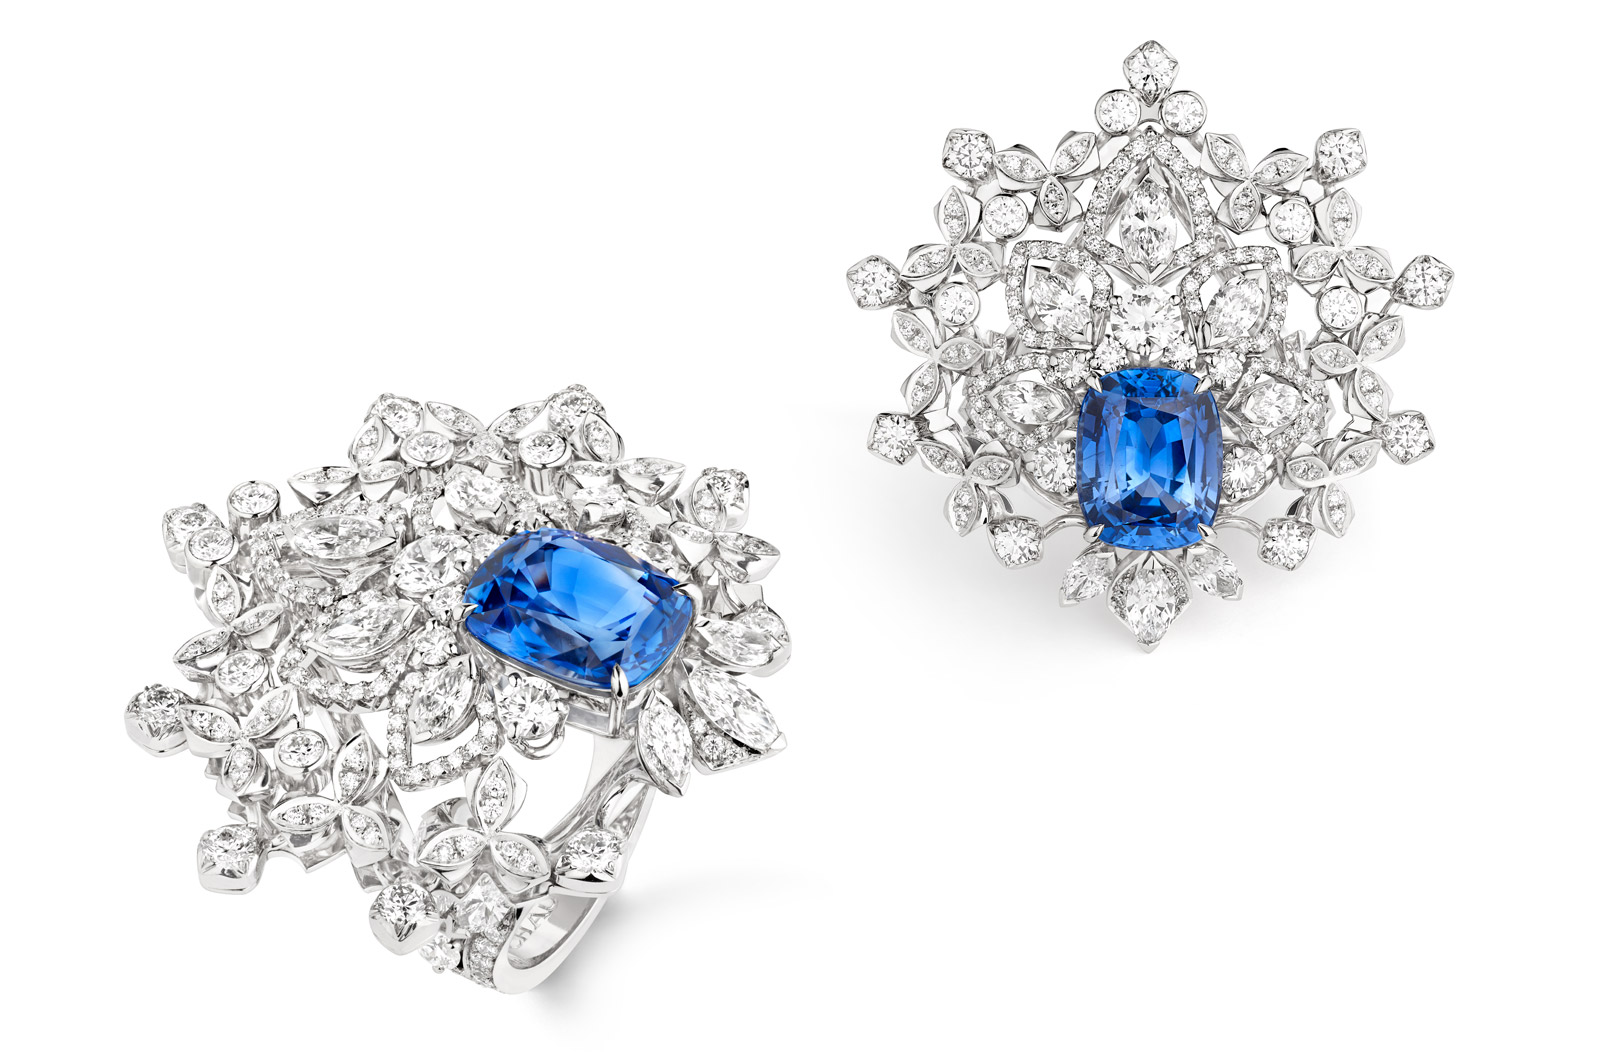 Chaumet 'Promenades Imperiales' collection ring in 18k white gold, set with a 5.01ct Ceylon sapphire and diamonds